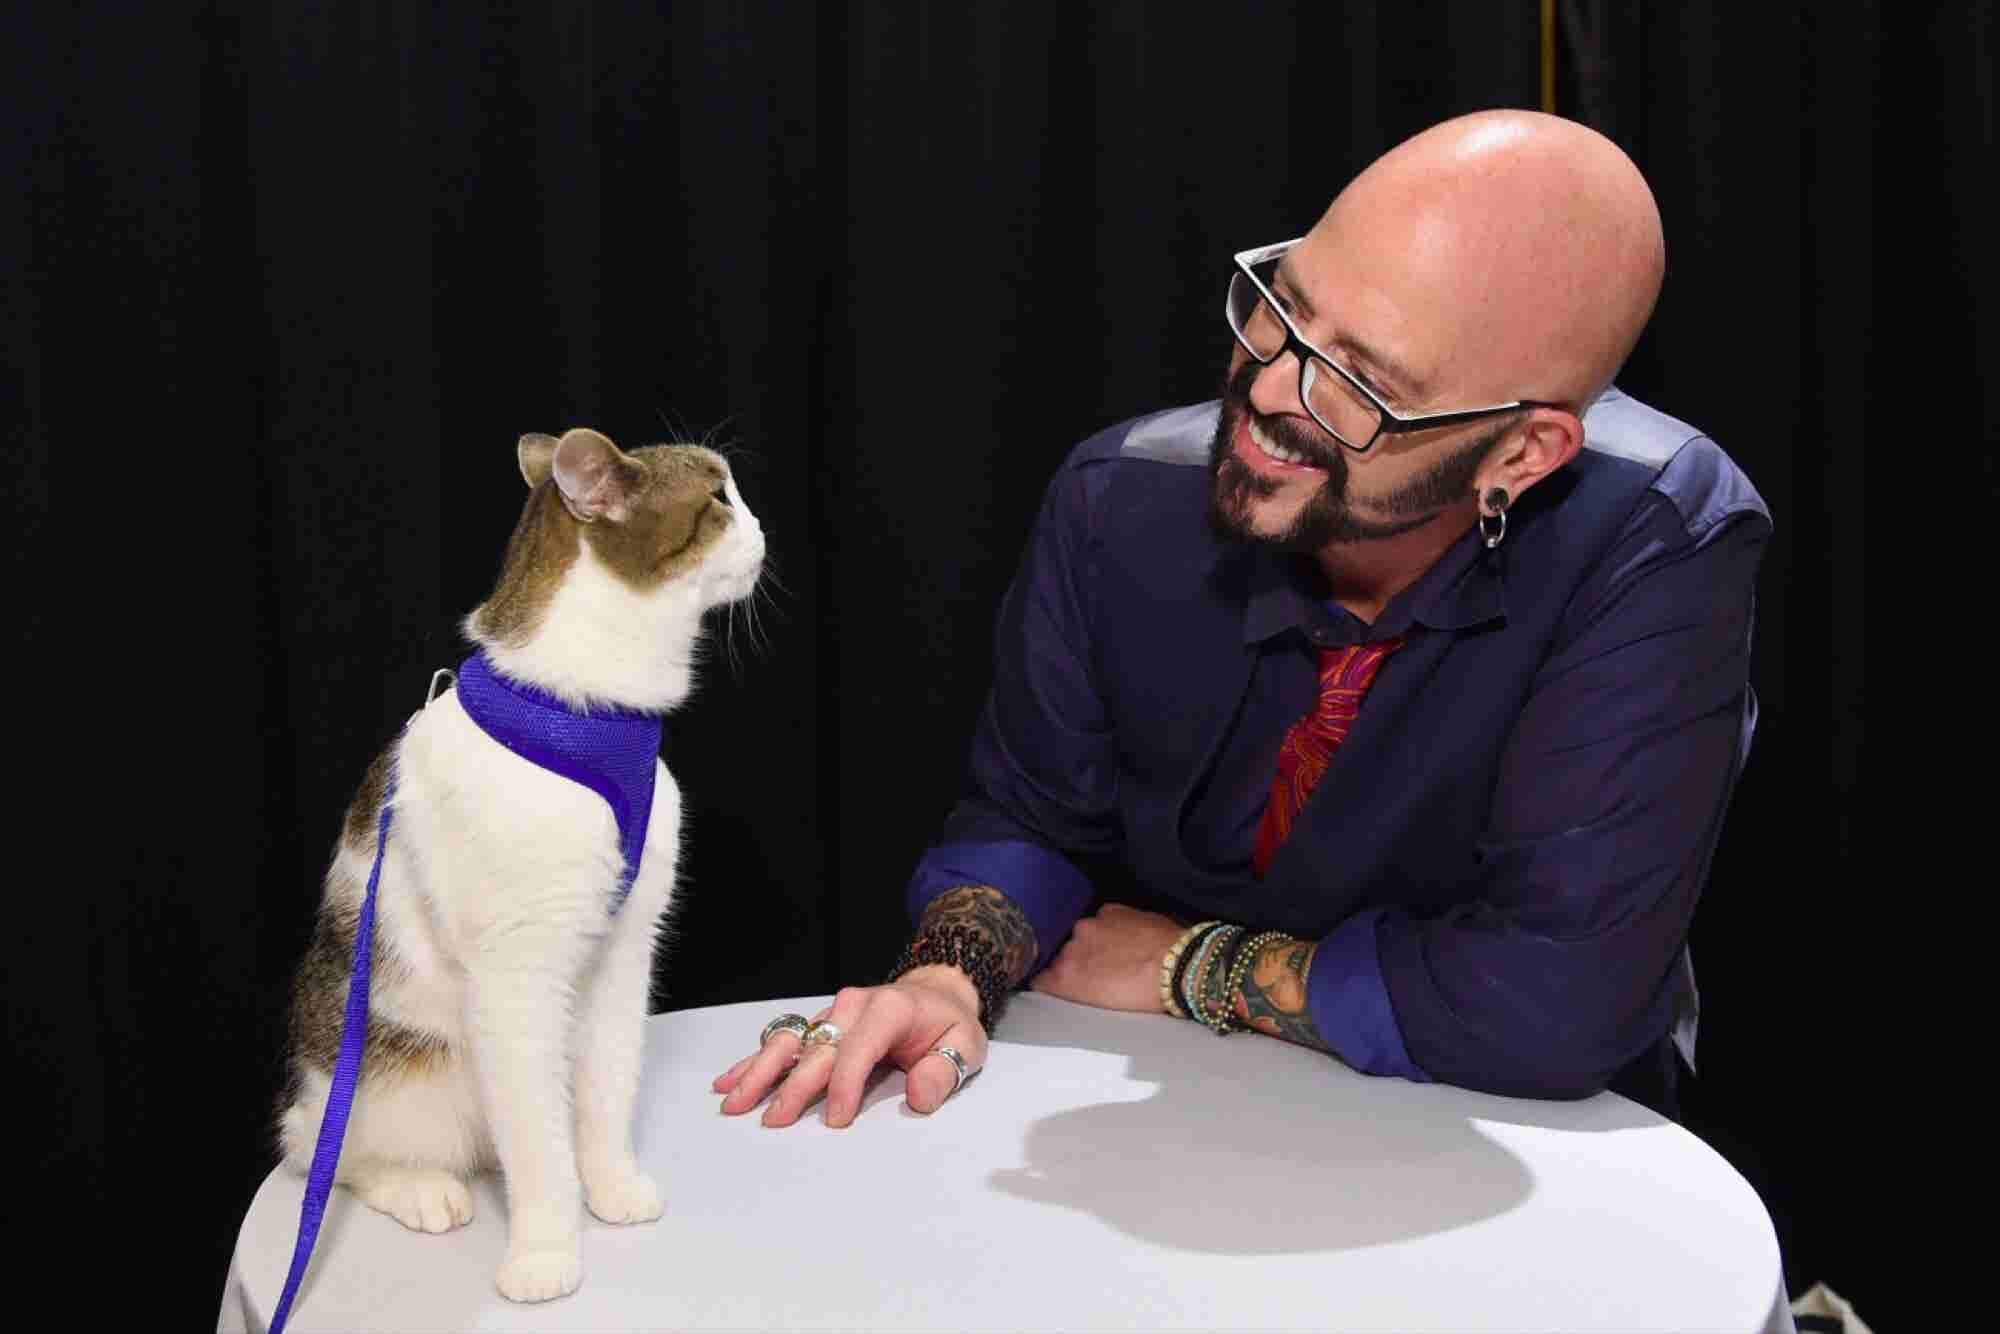 'Catpreneurs' Unite at New York's First 'Cat Camp' Symposium